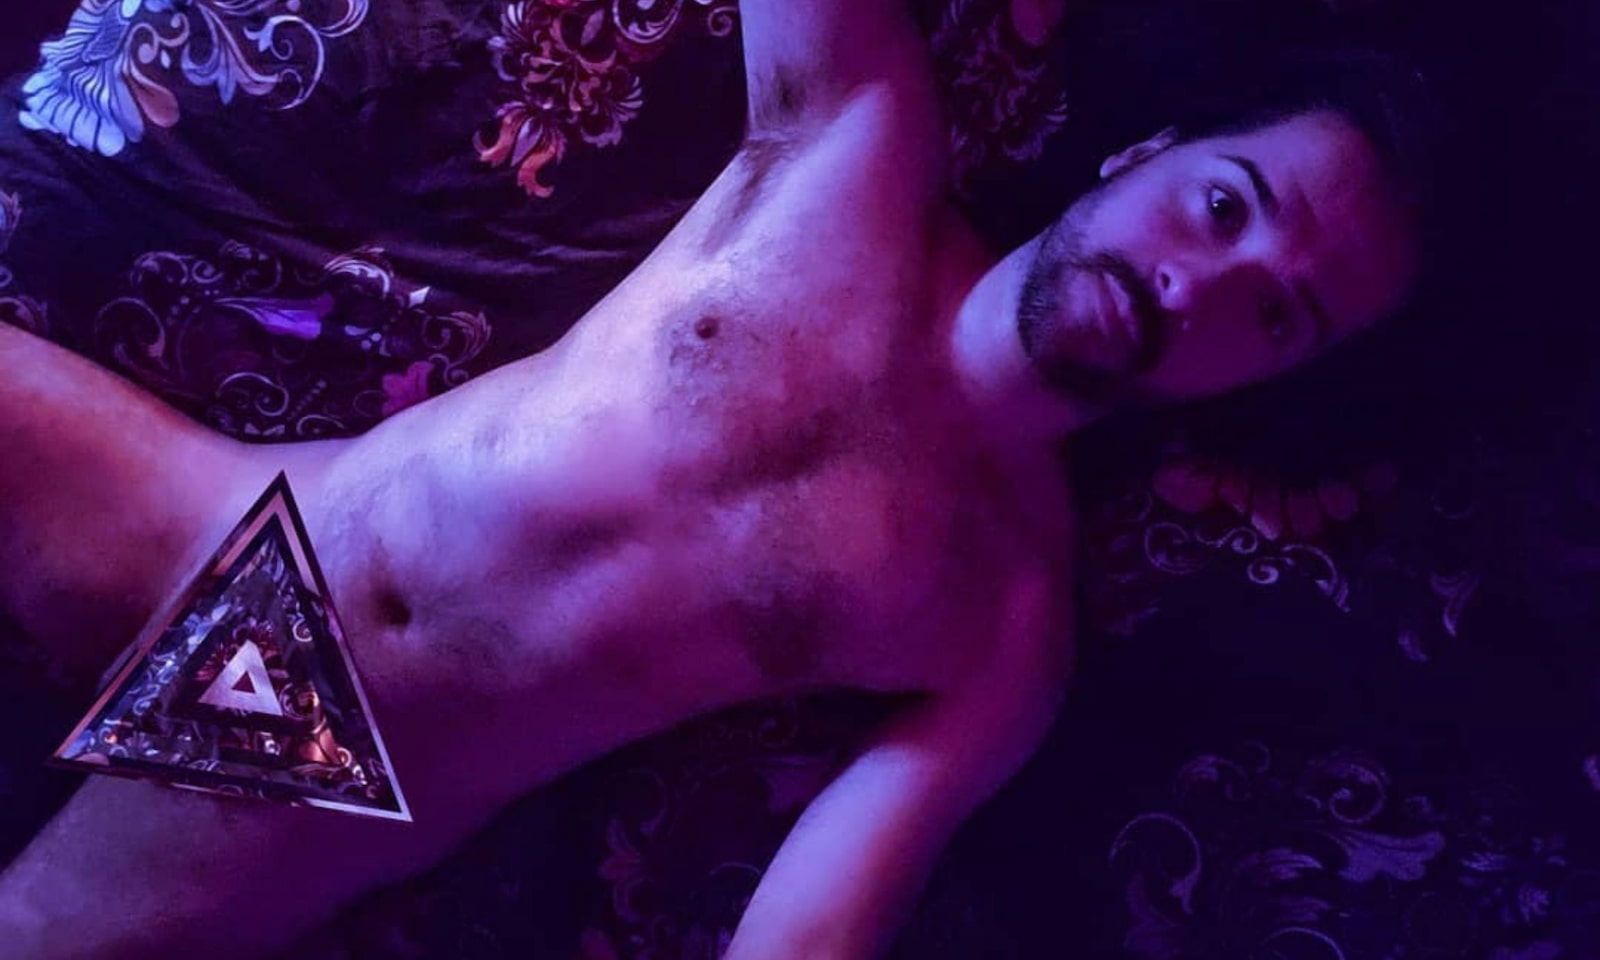 Gabriel Novo Is Working To Amplify The Voices Of Bisexual Men